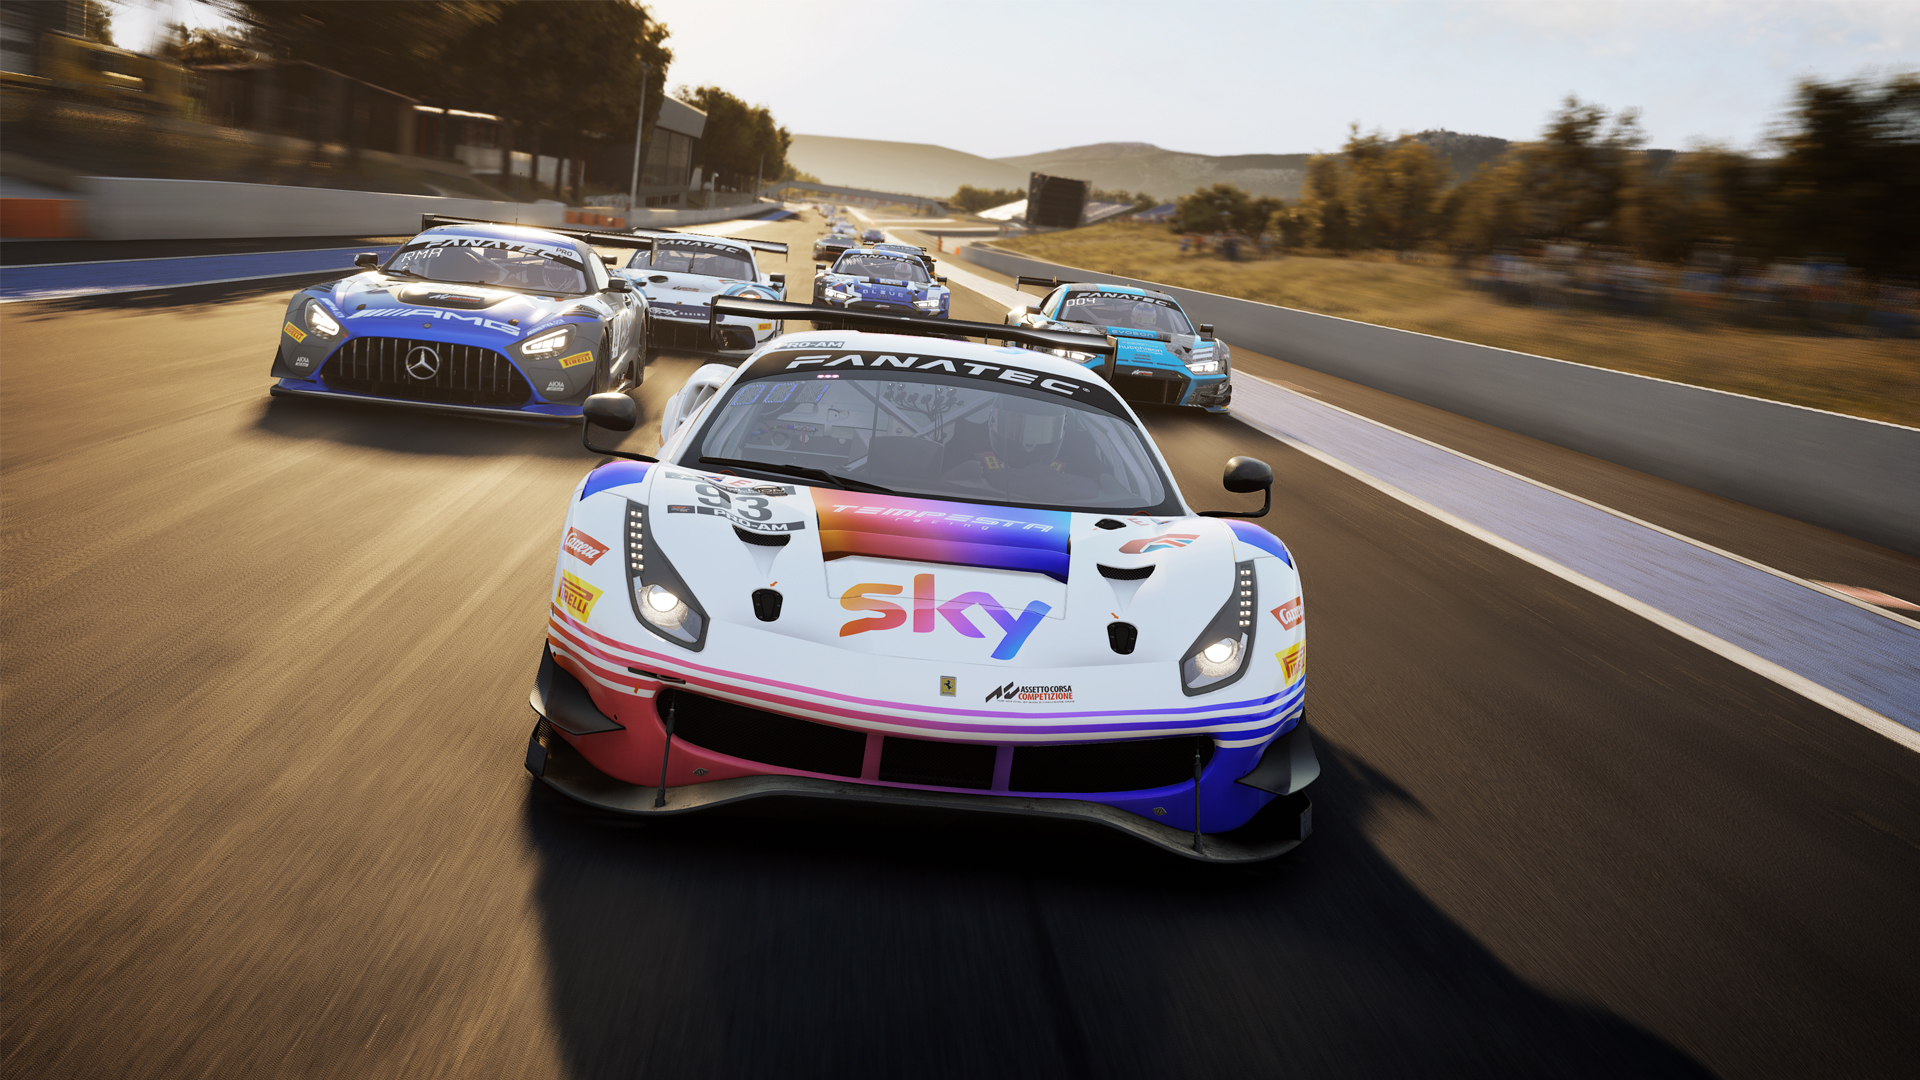 Assetto Corsa Competizione arrives on PS5 and Xbox Series X S, 24th February 2022